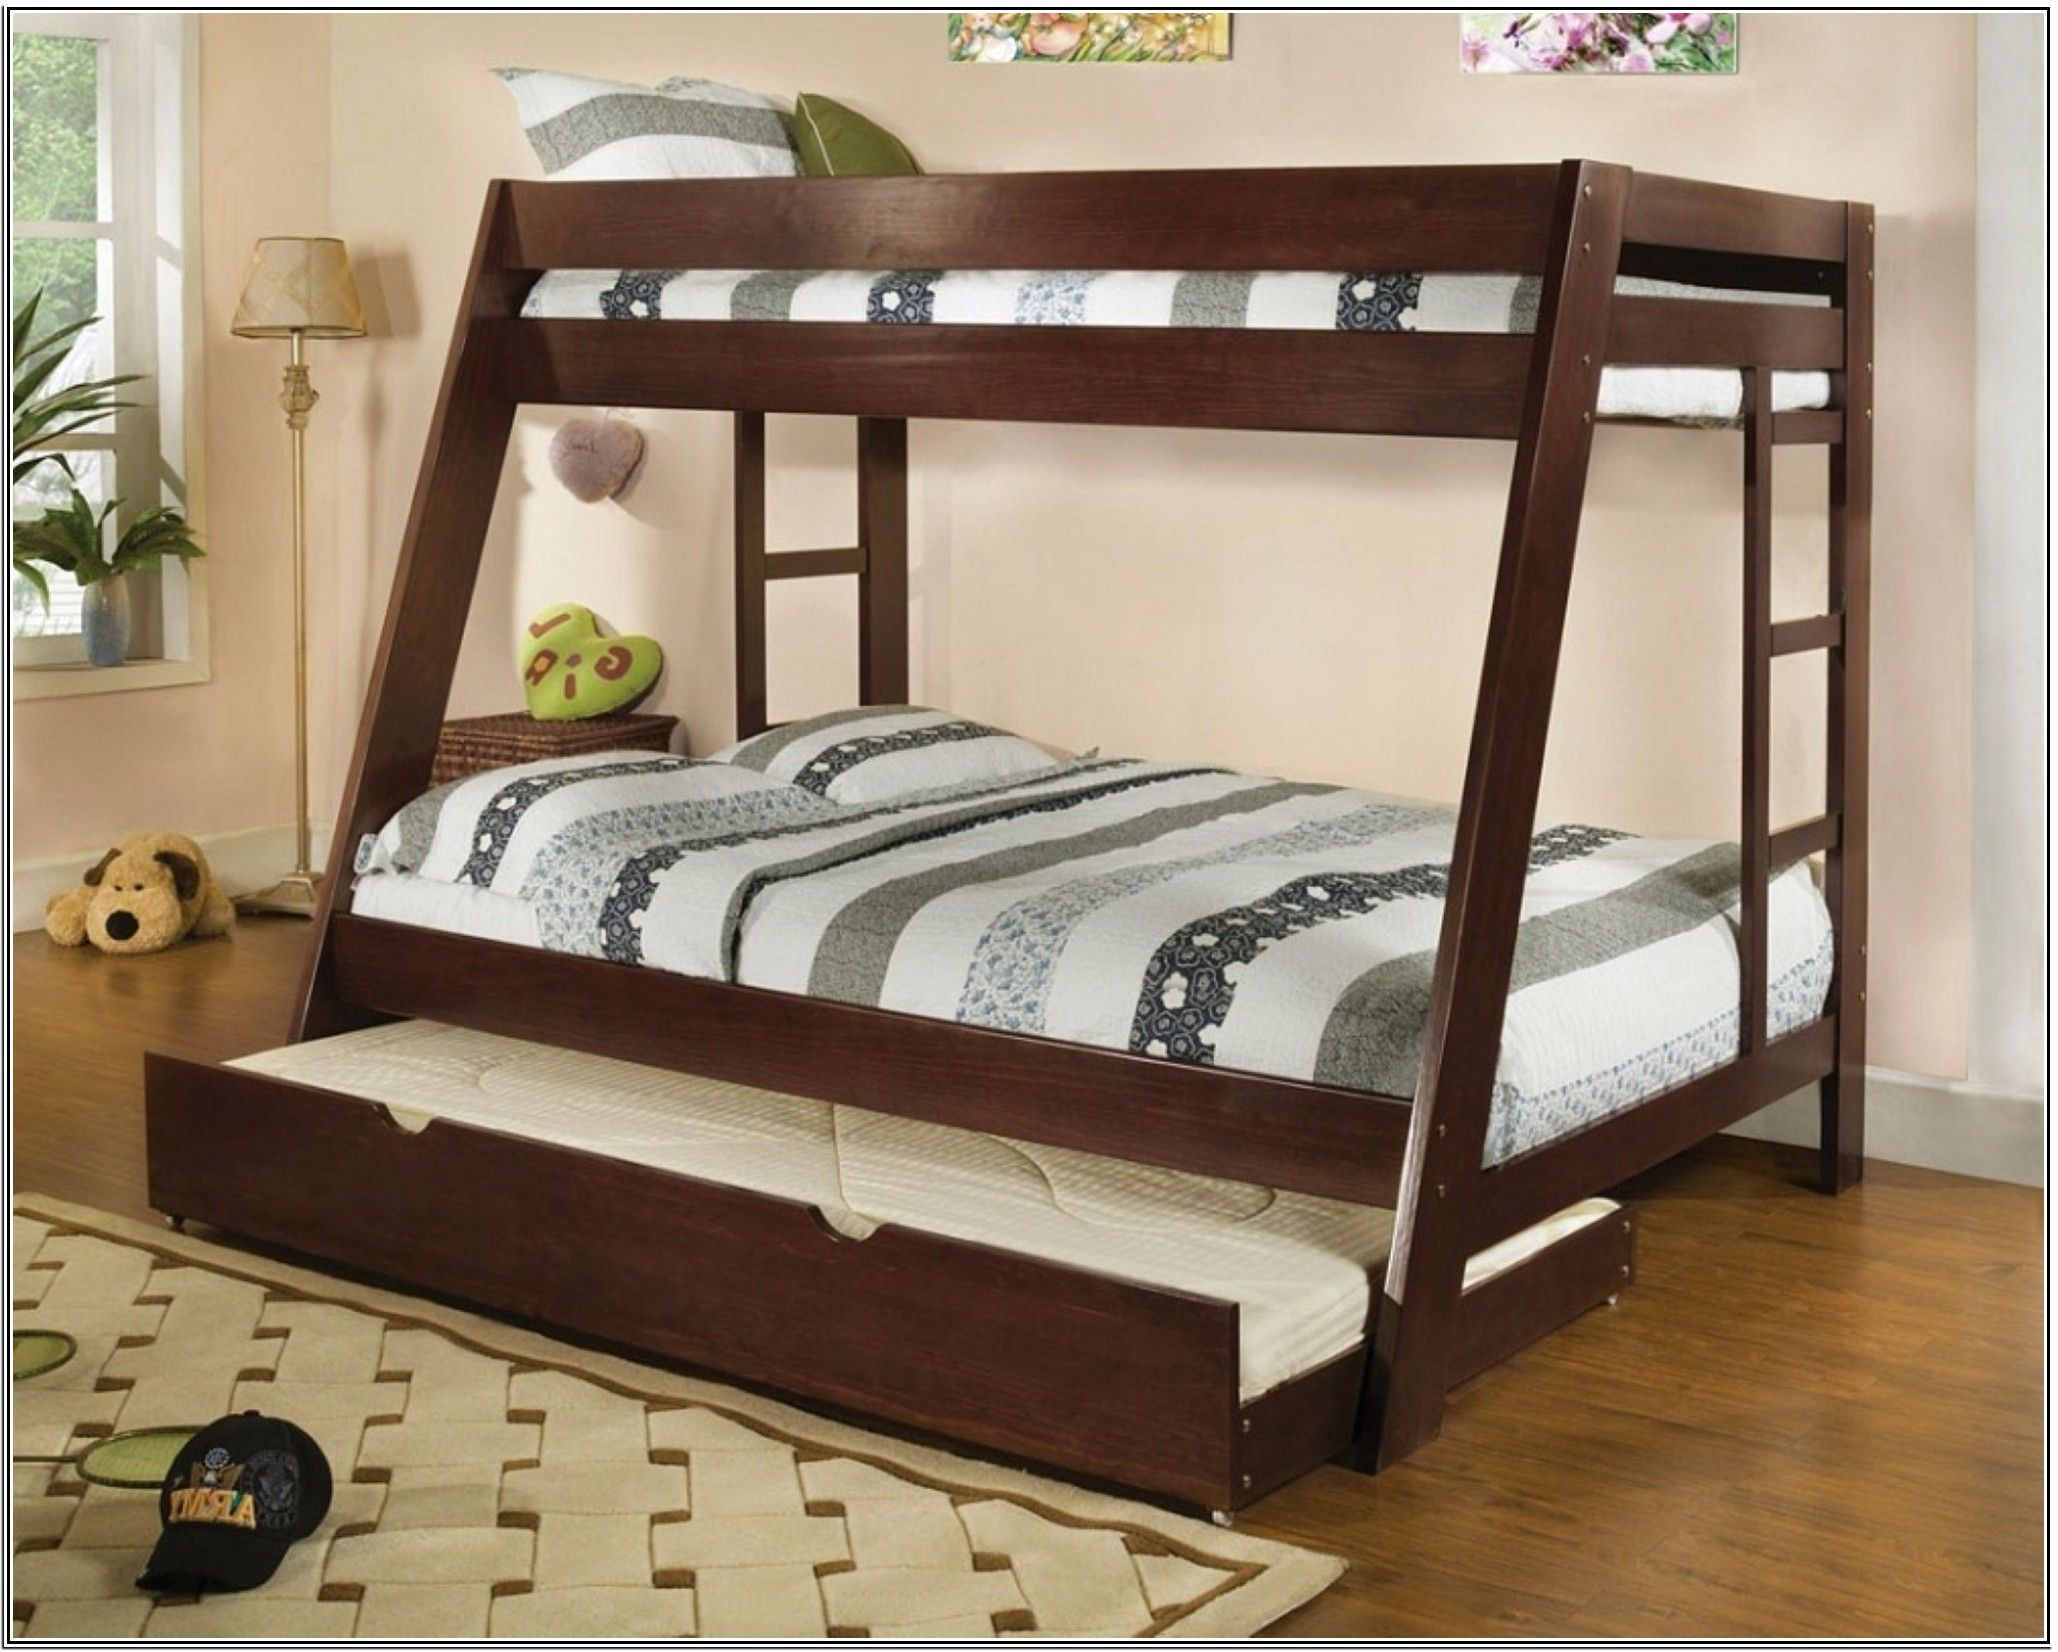 Attractive Wood Double Deck Bed Designs For Boys In Navy Blue Bedroom Home Of And  Images Double Deck Bed Designs